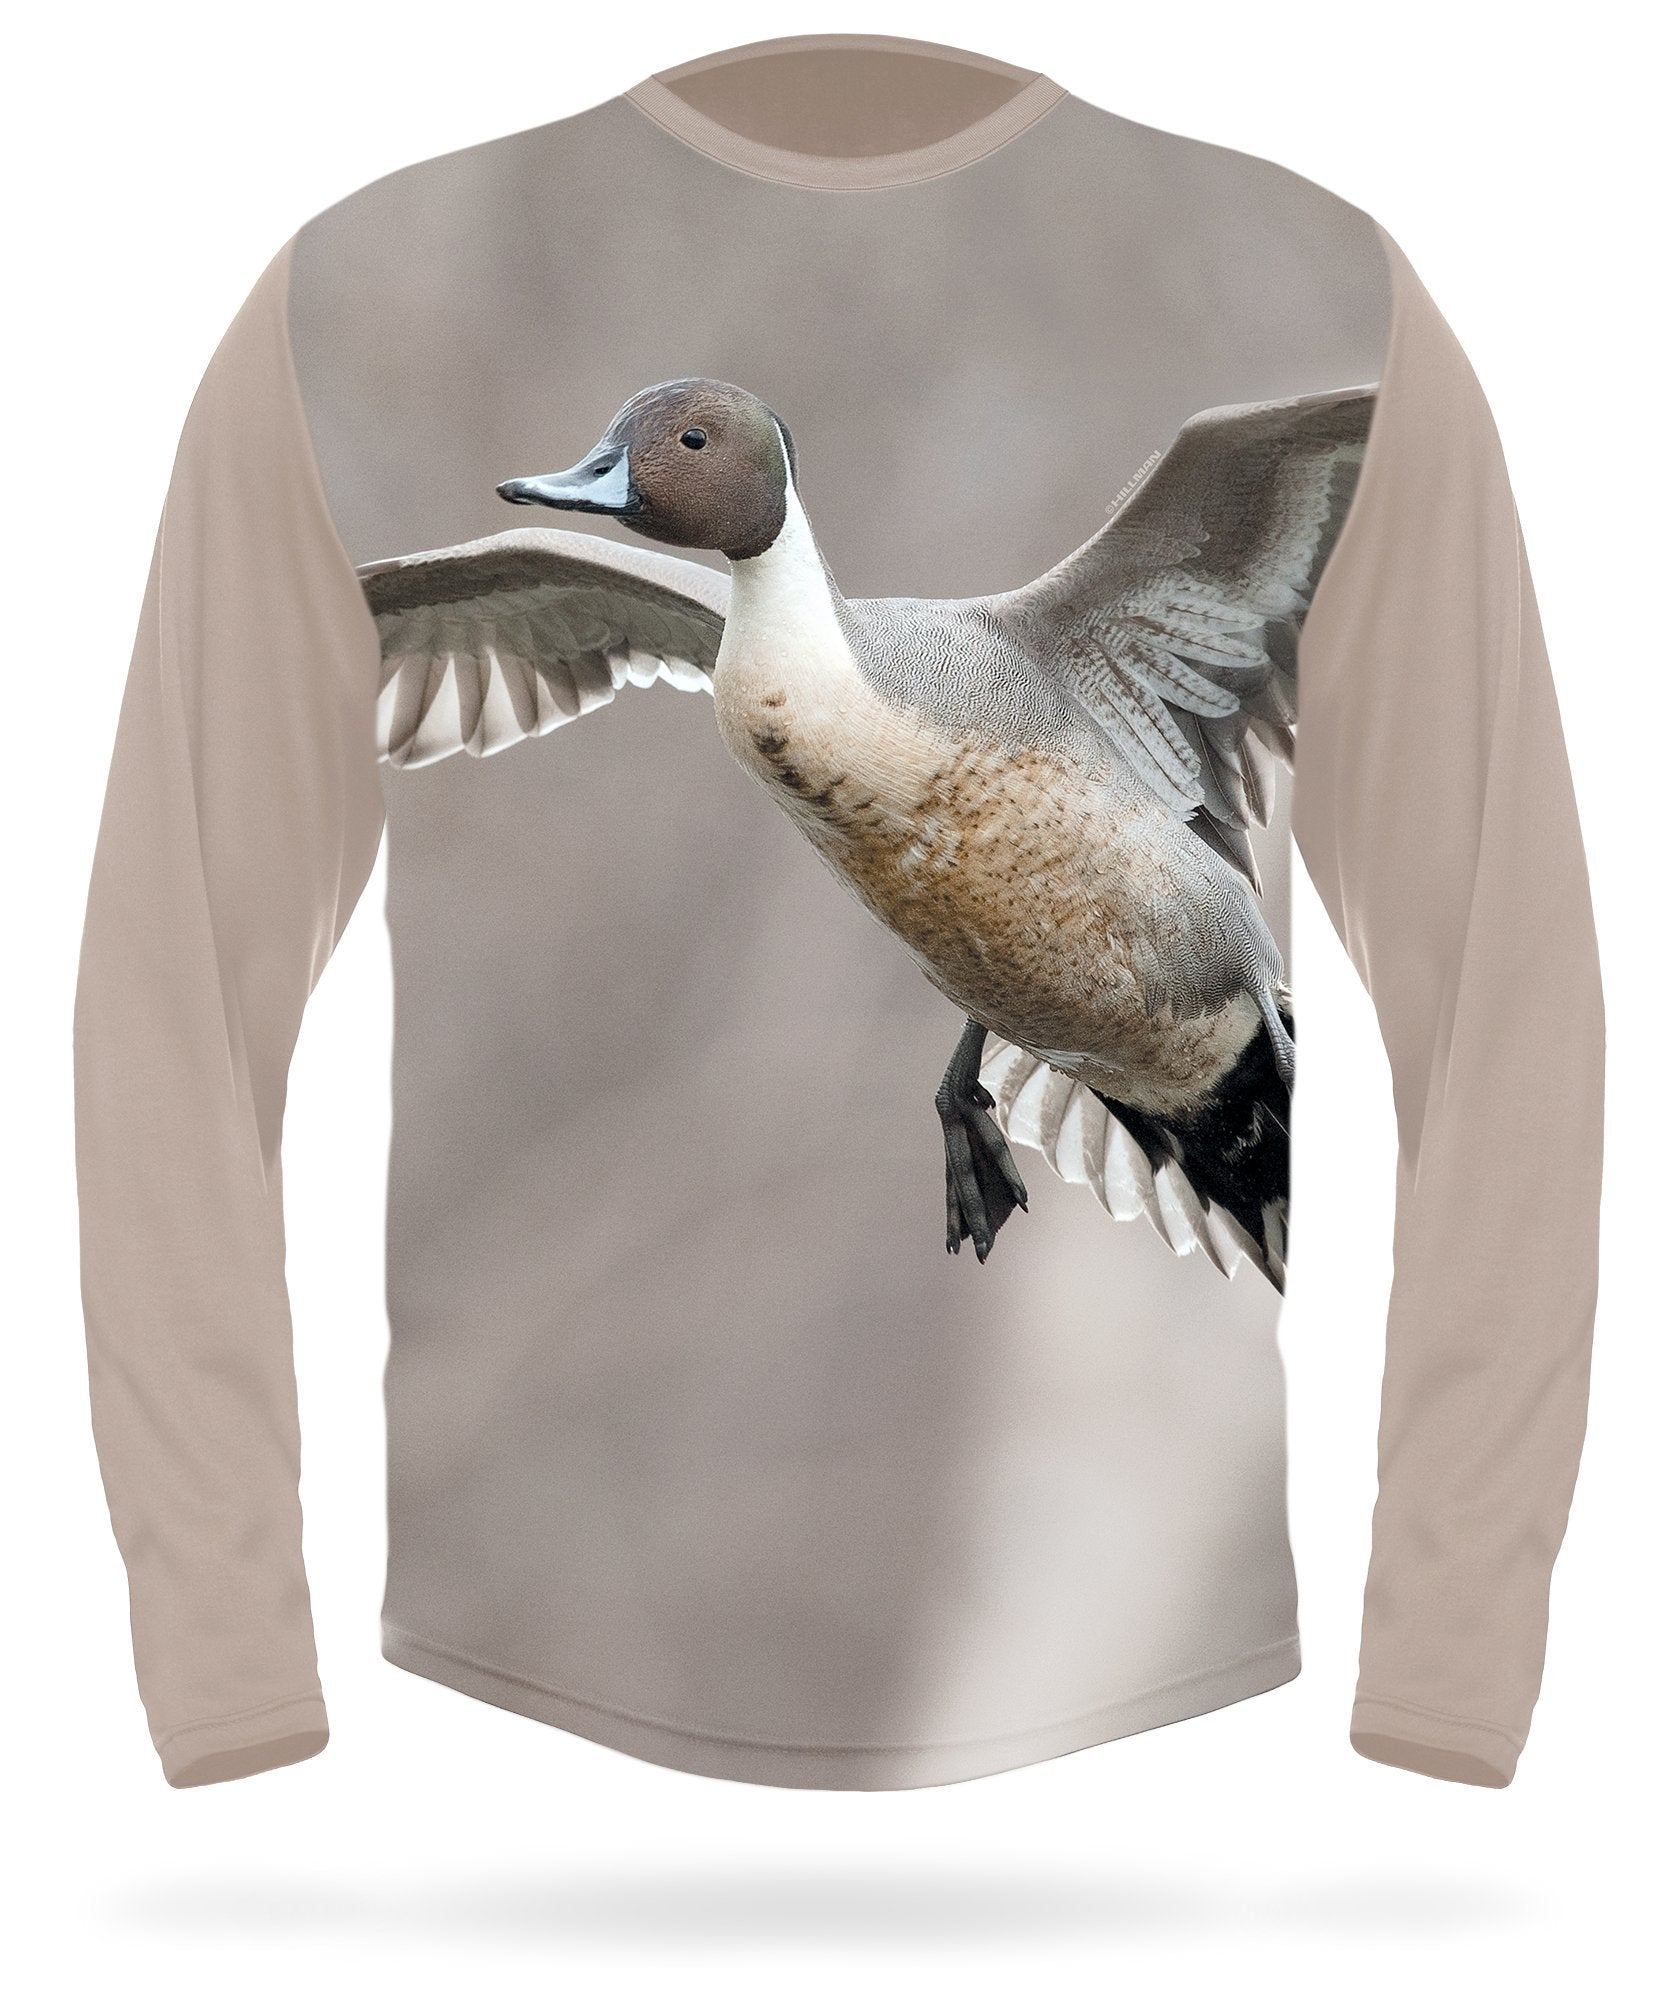 Northern Pintail T-Shirt - Long Sleeve